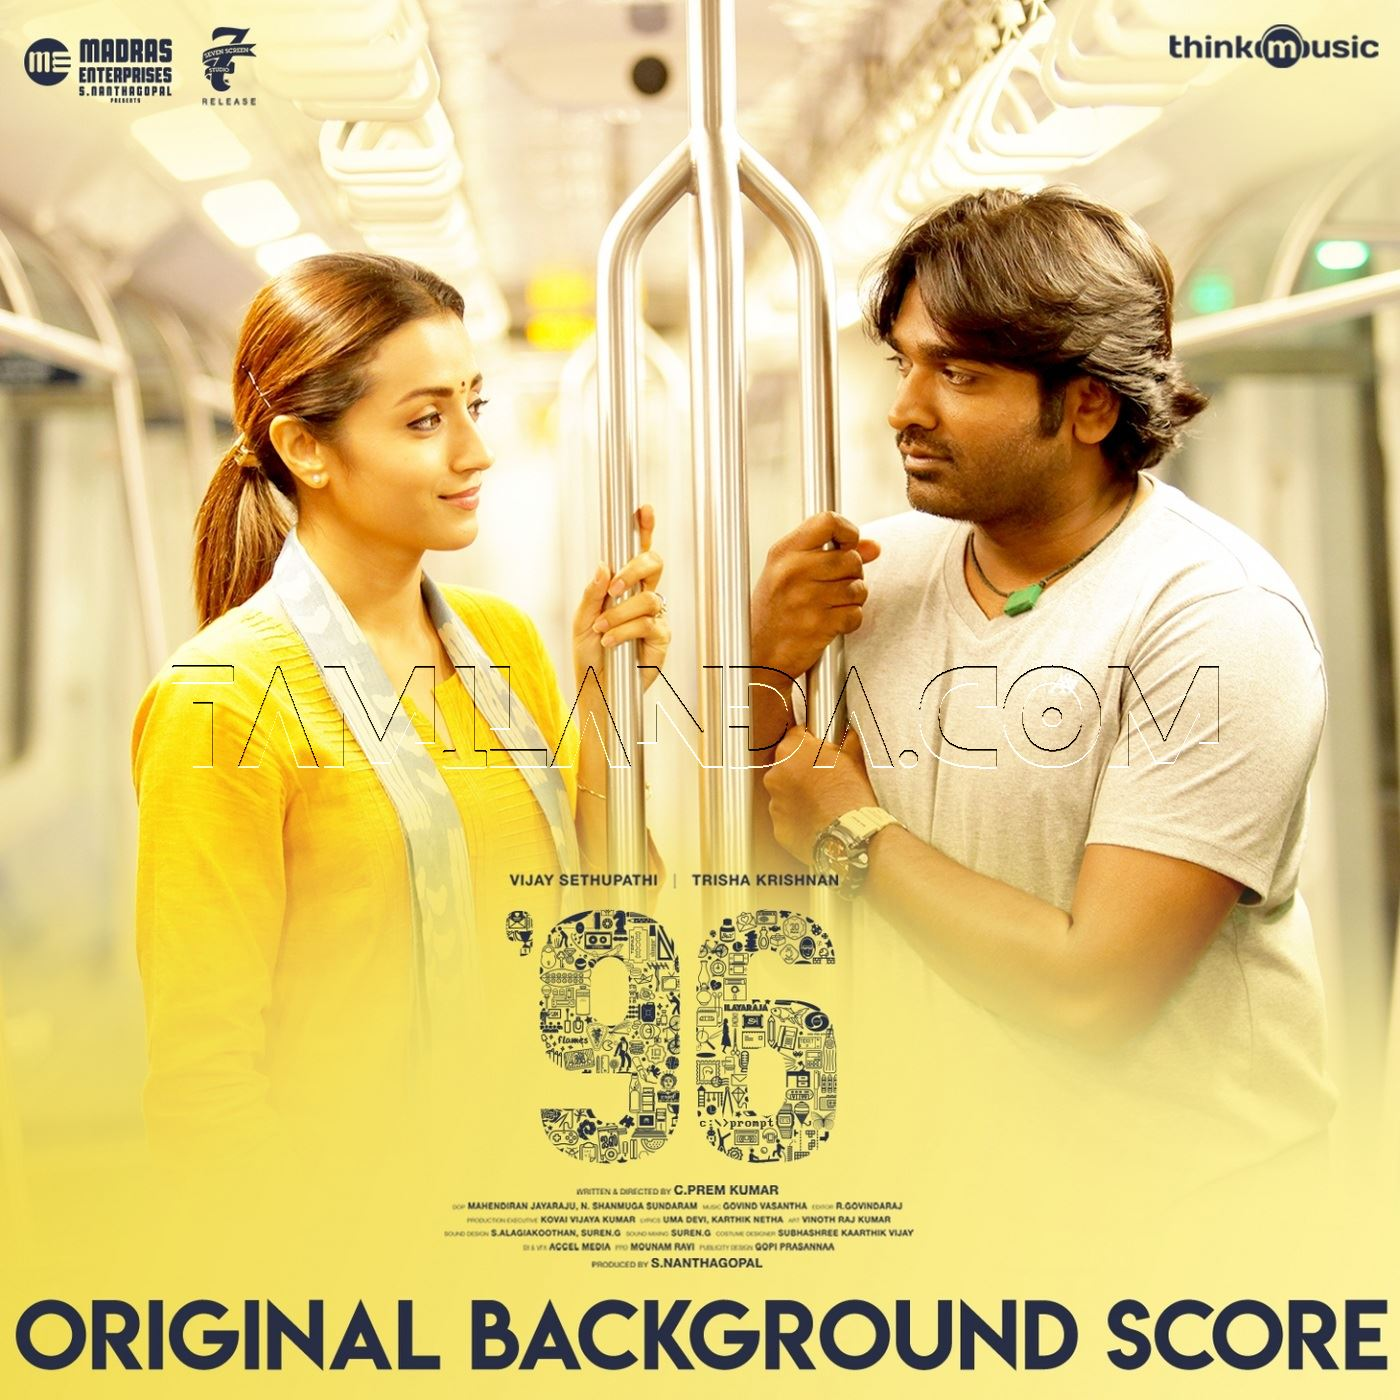 96 – Original Background Score FLAC Album